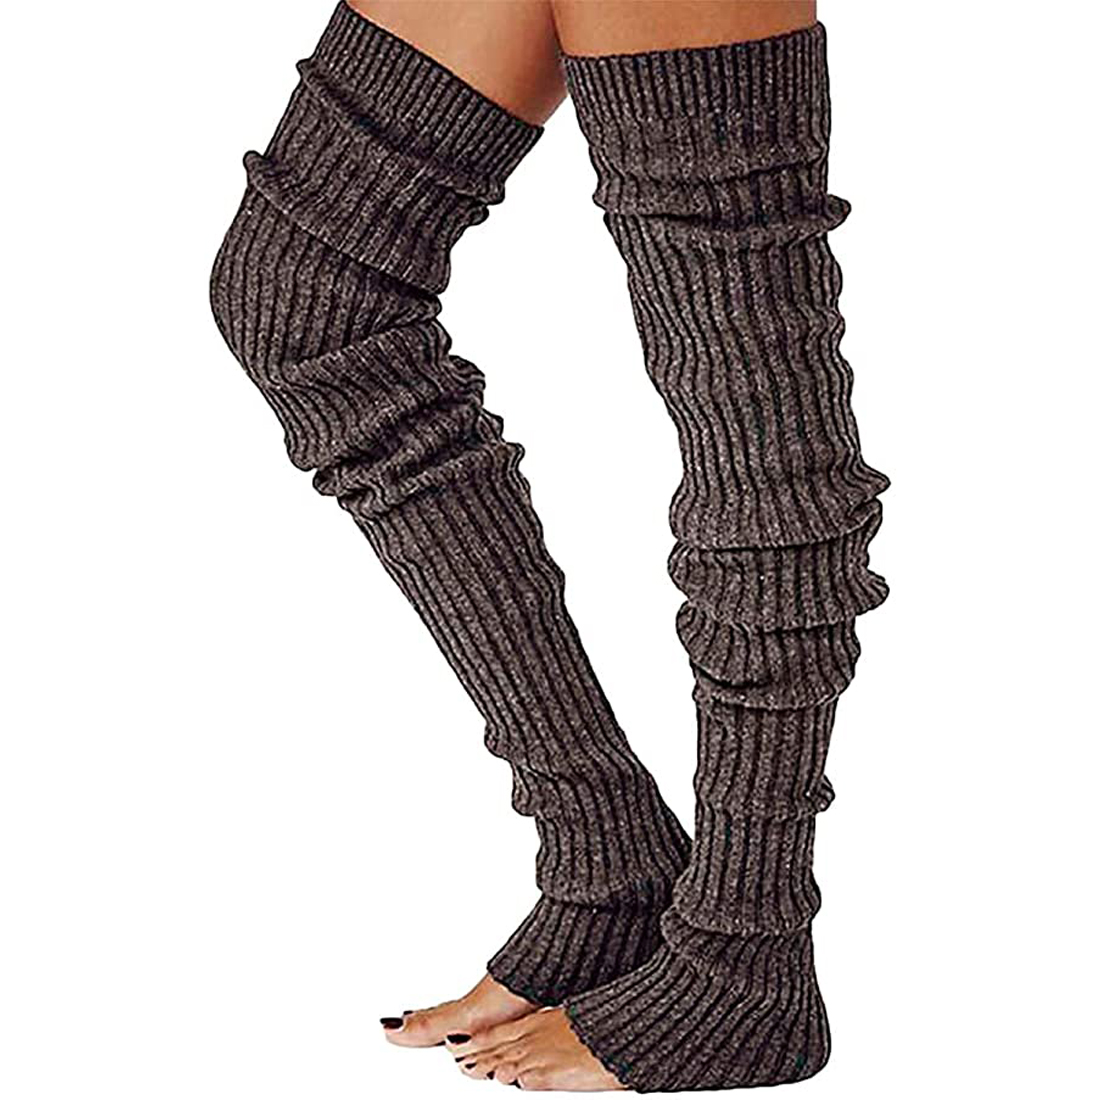 Details about  /Warm Thigh High Sock Women Solid Color Over knee Long Boot Knitted Cable Knit